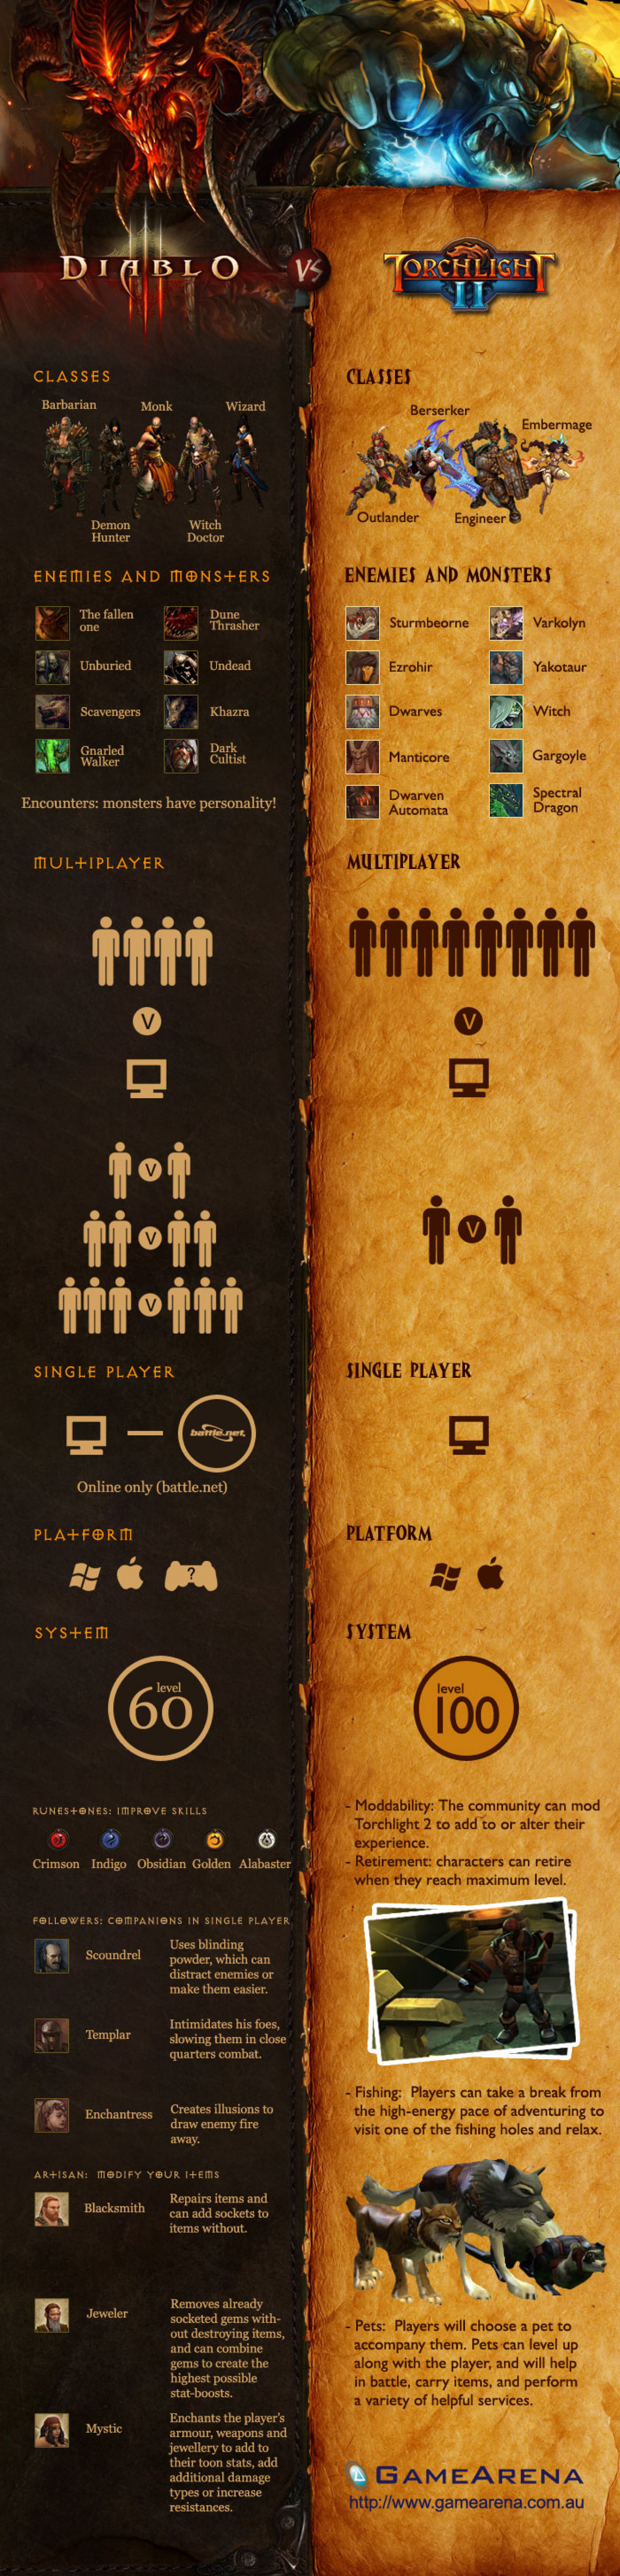 Diablo 3 vs Torchlight 2 Infographic